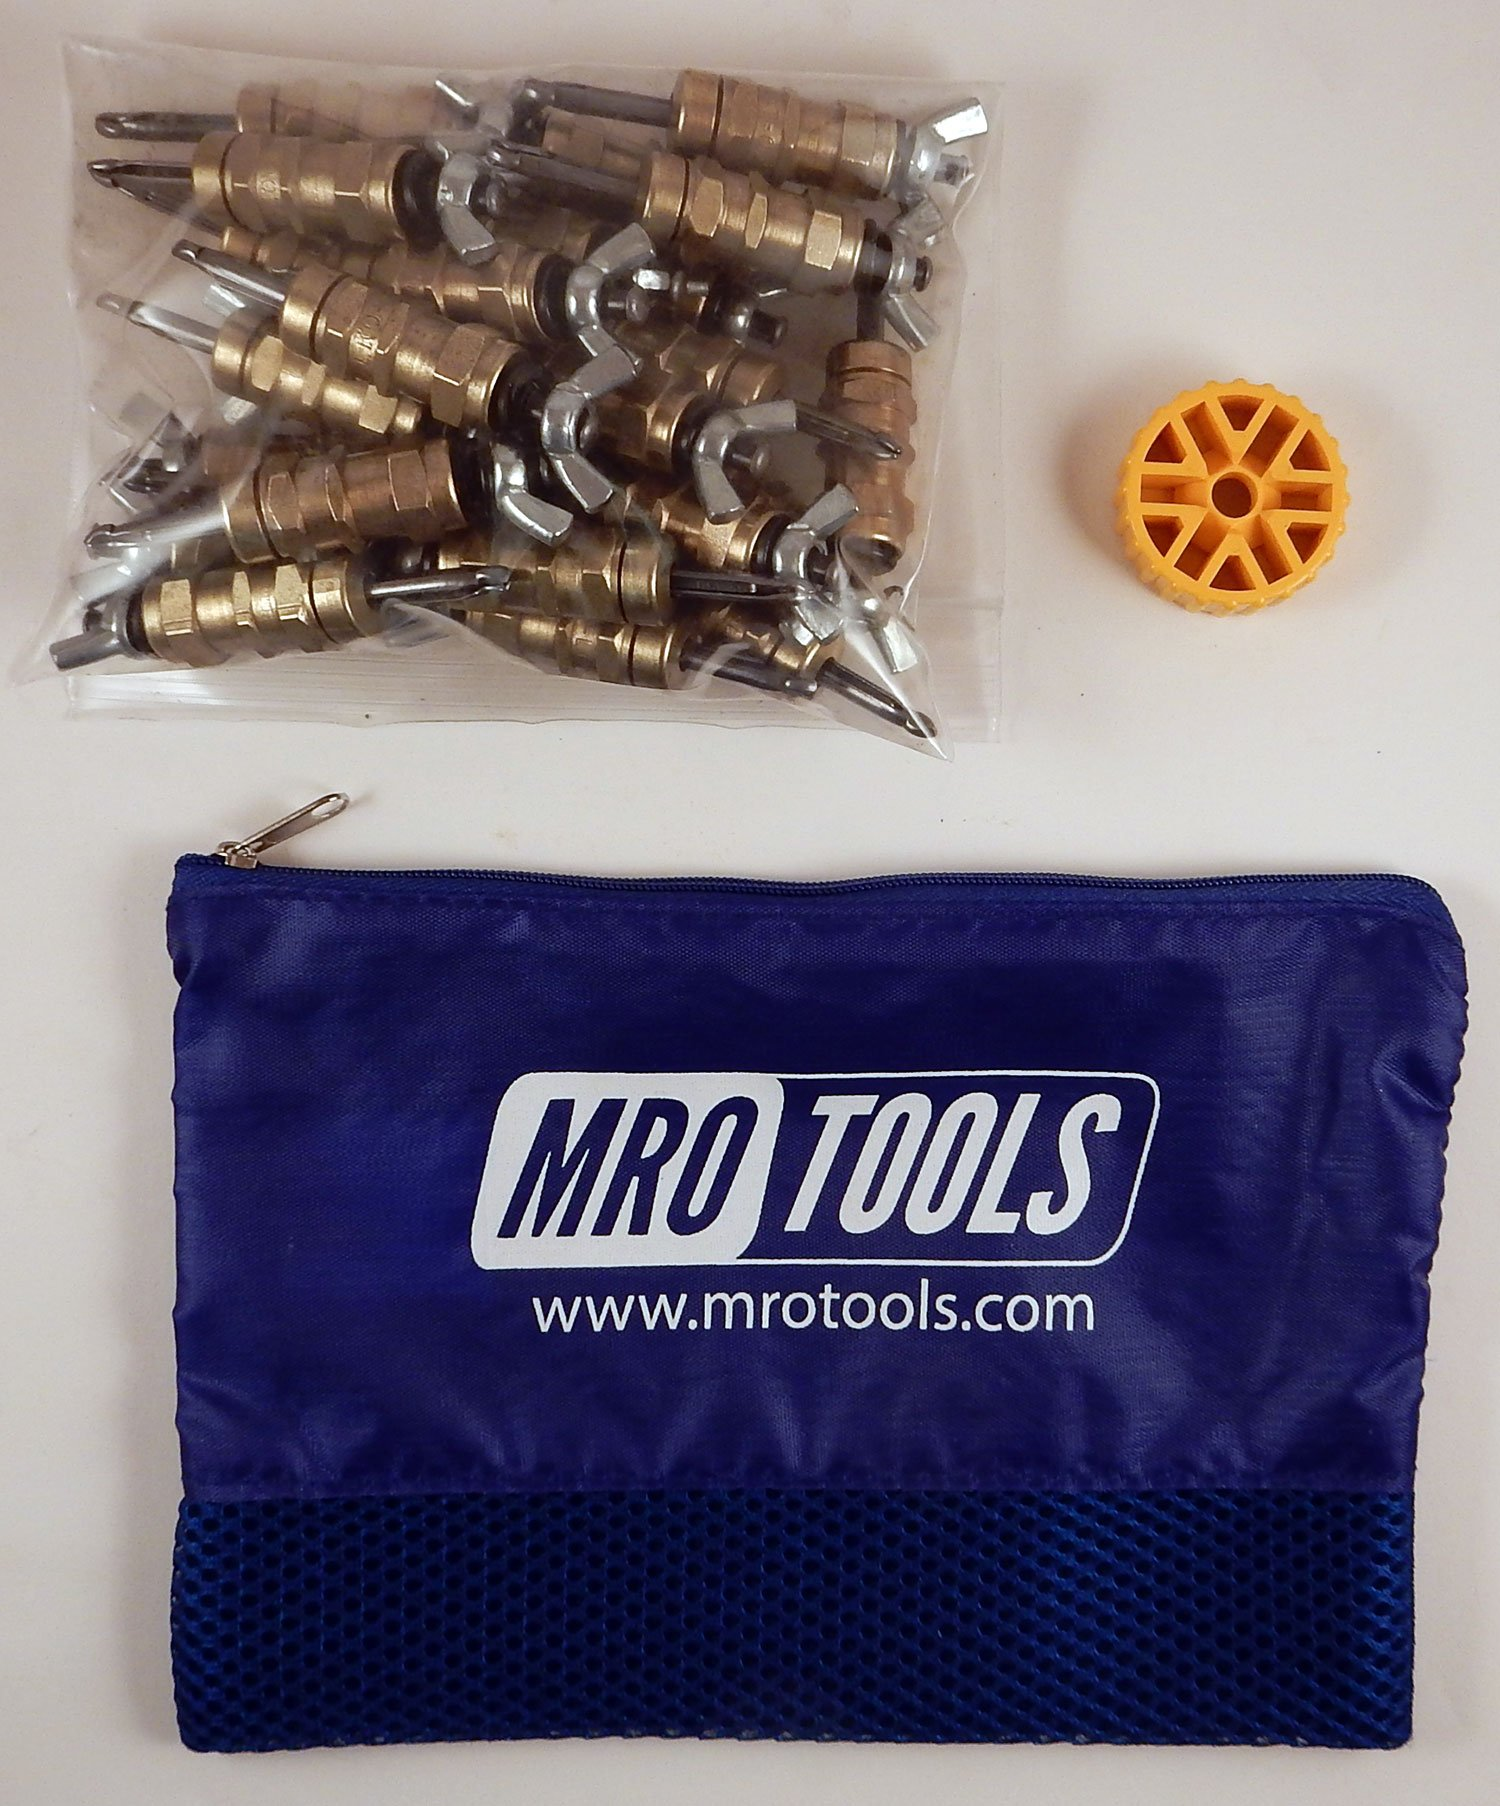 25 3/16 Standard Wing-Nut Cleco Fasteners w HBHT Tool & Carry Bag (KWN1S25-3/16) by MRO Tools Cleco Fasteners